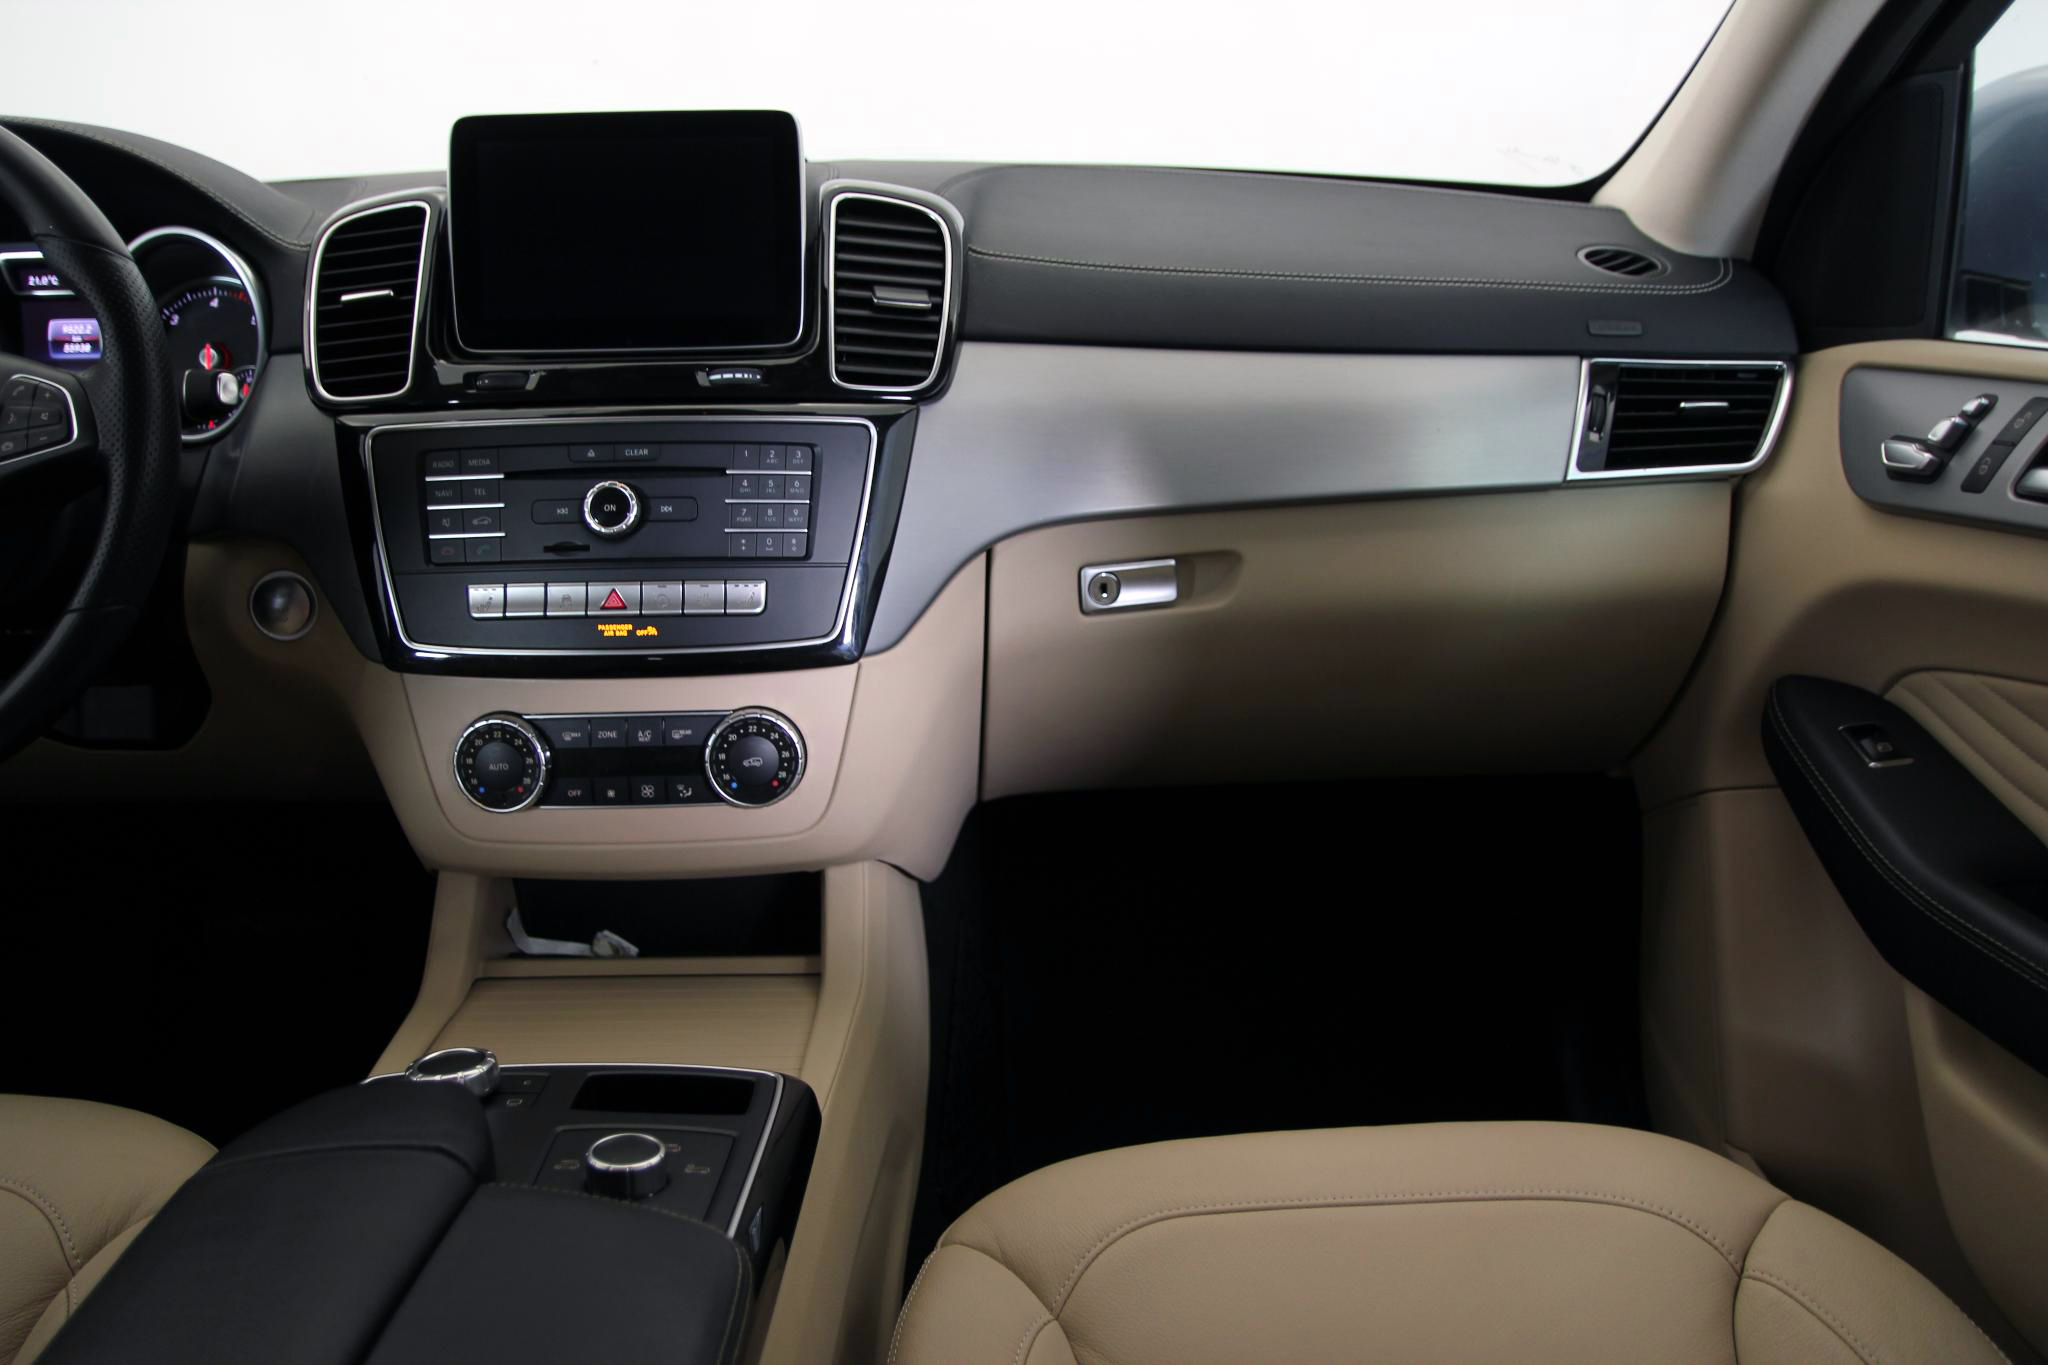 Mercedes-Benz Clase GLE GLE COUPE 350 D 4MATIC imagen 12